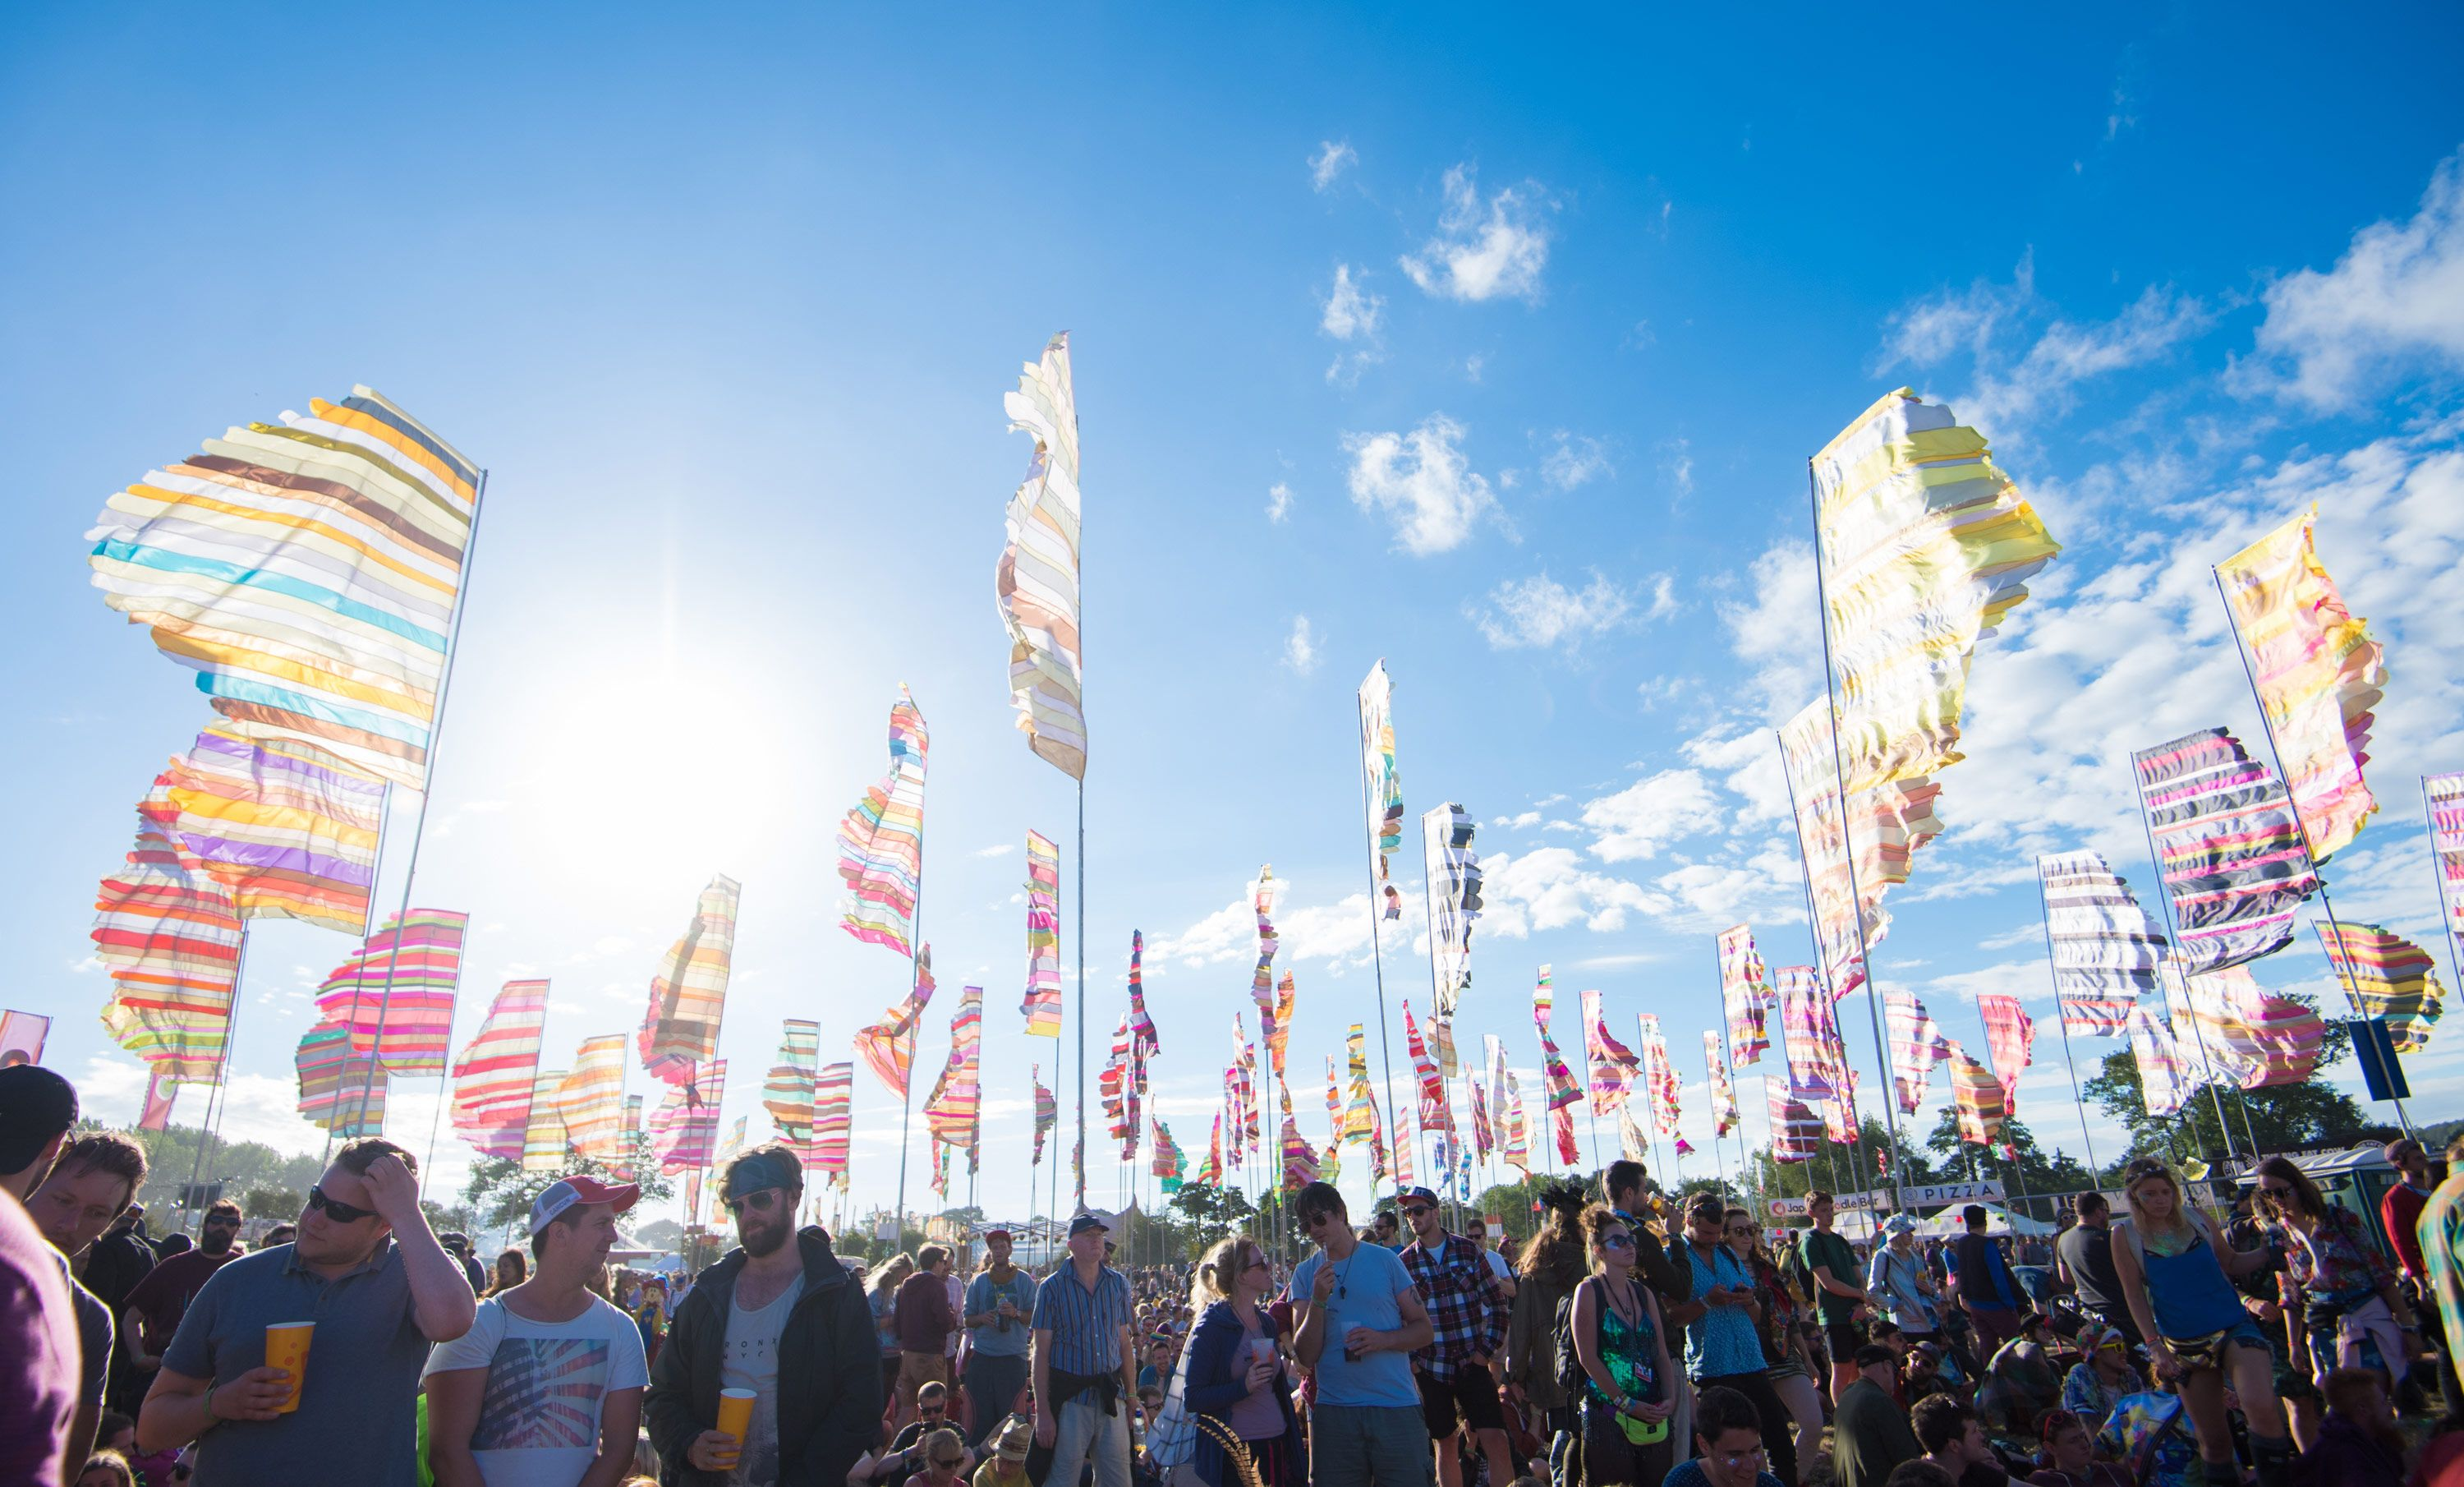 Glastonbury Festival 2019: Tickets, line-up, weather, rumours and everything you need to know